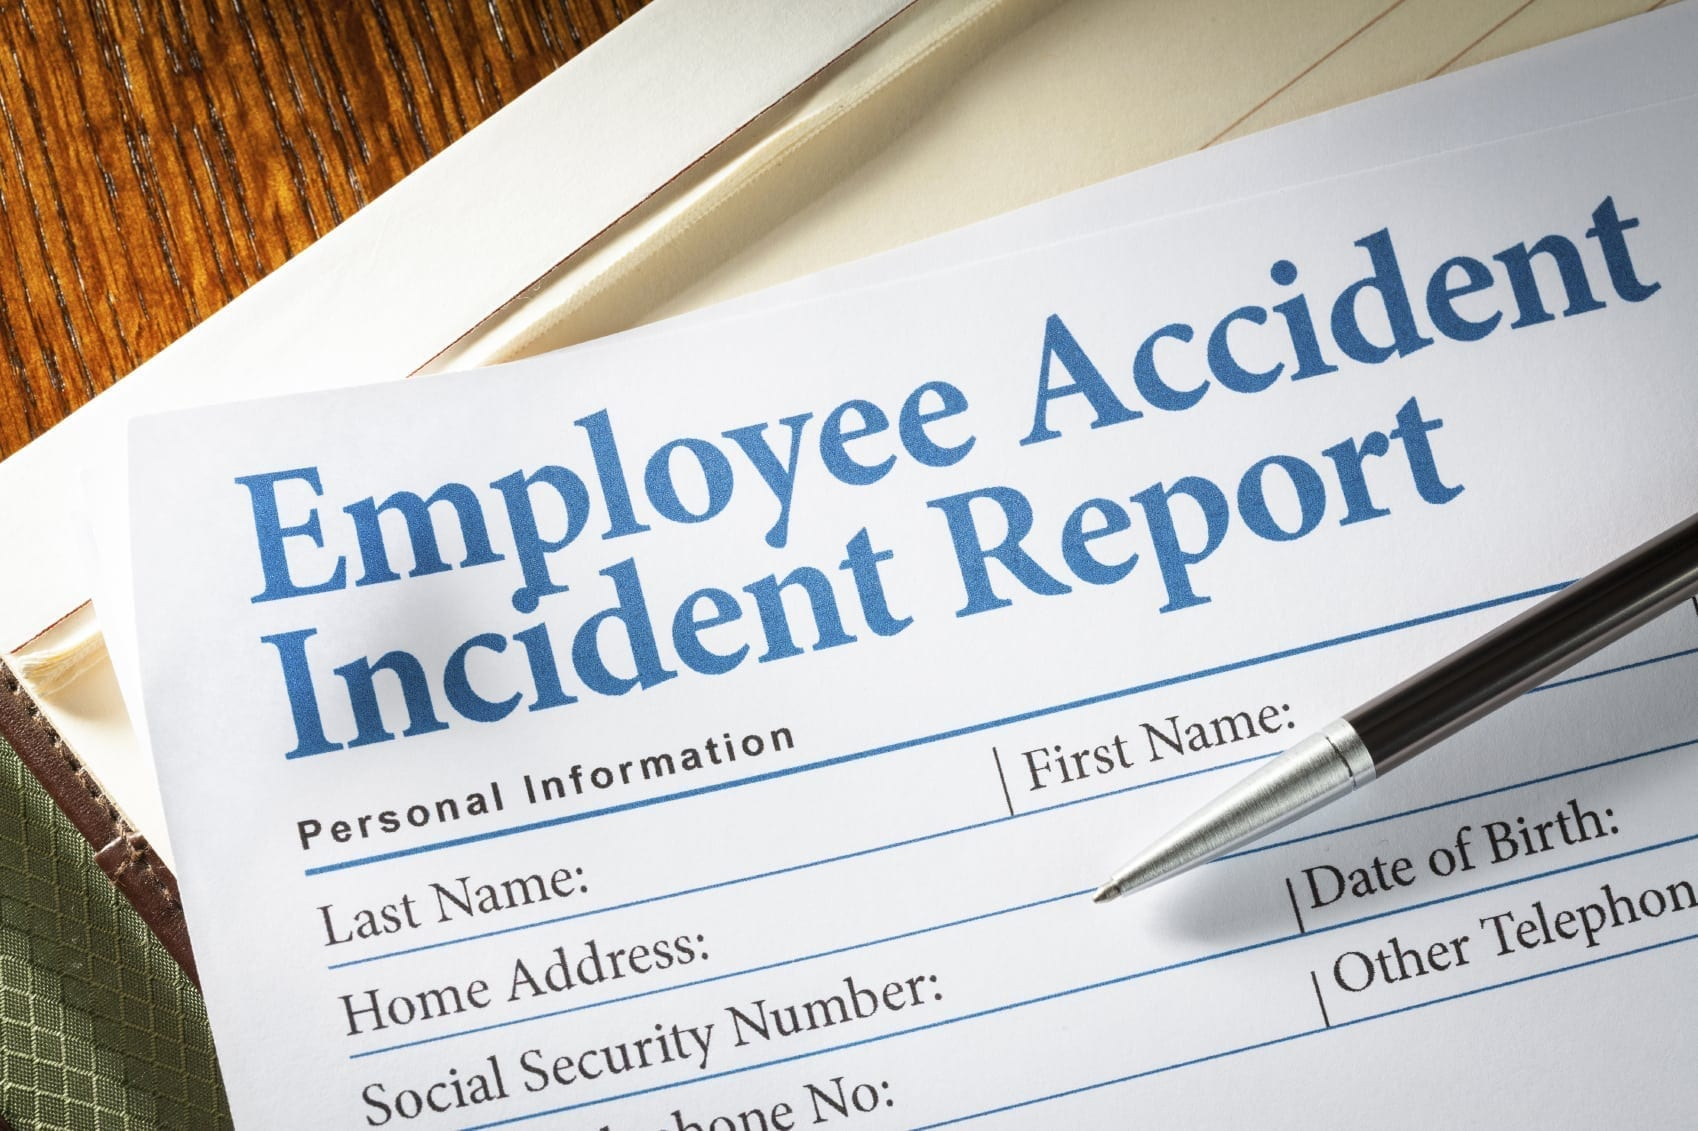 Employee Accident Incident Report Stock Photo